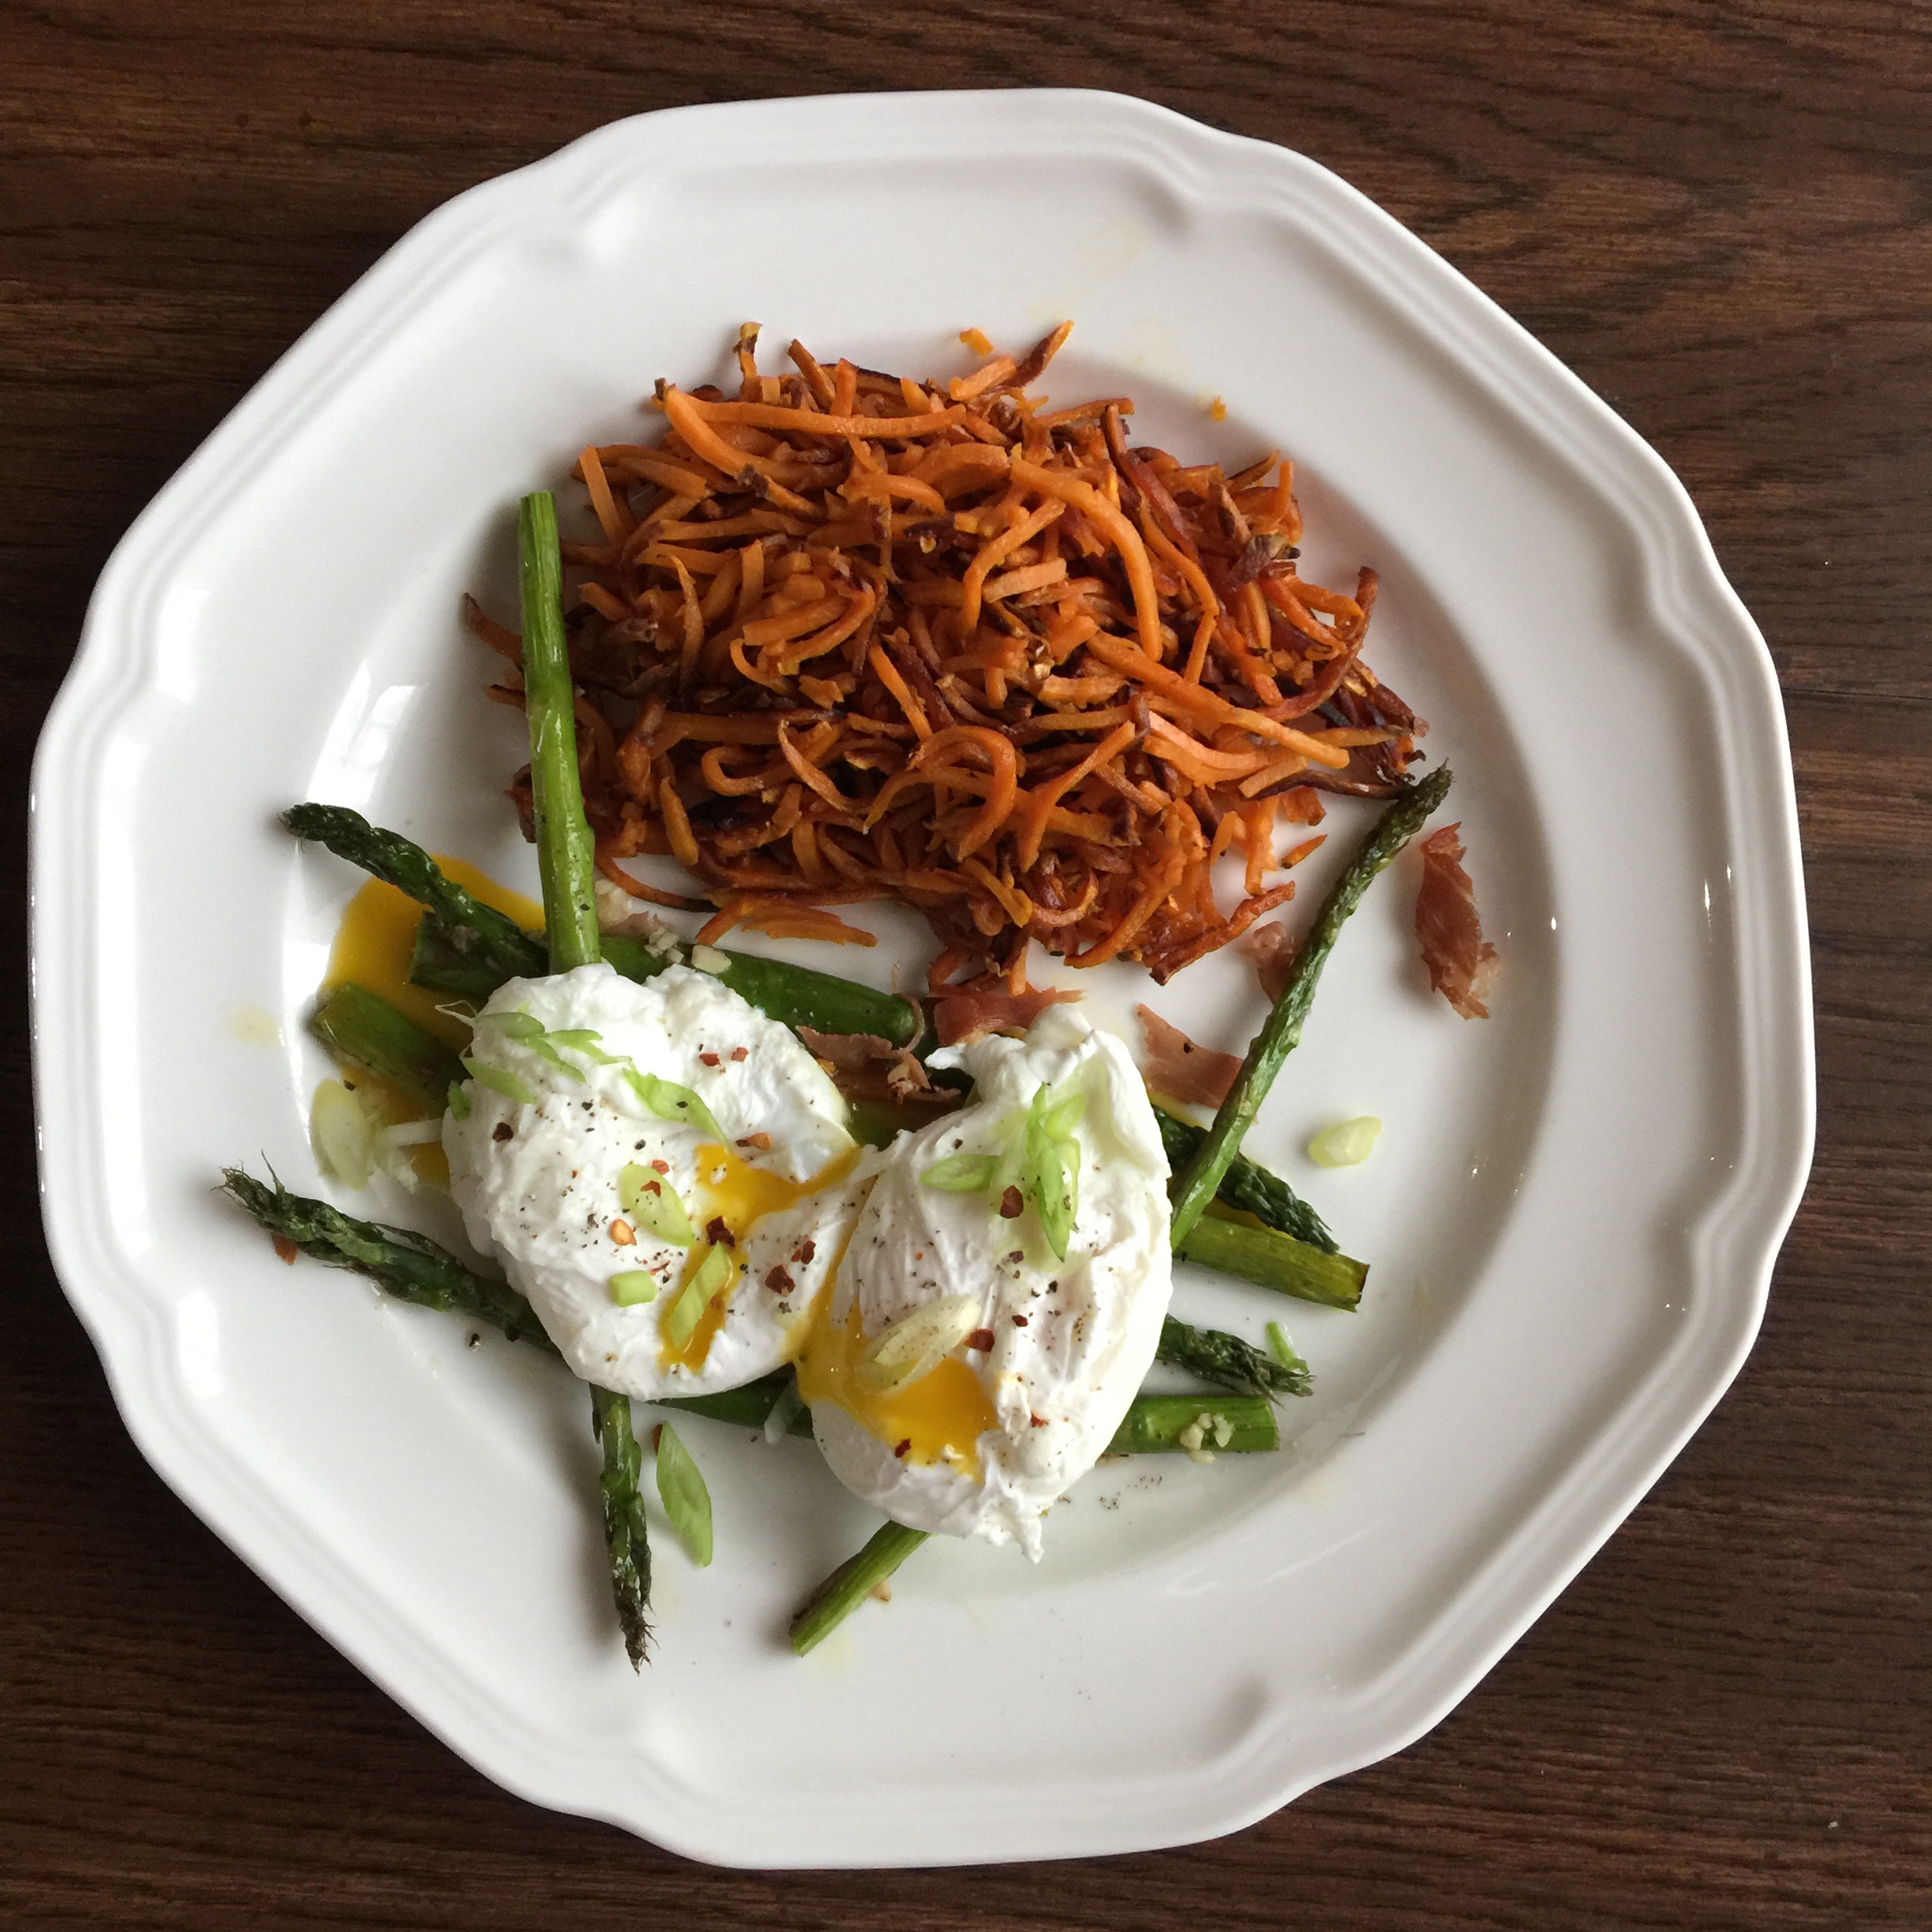 Roasted Asparagus Prosciutto and Egg Sage